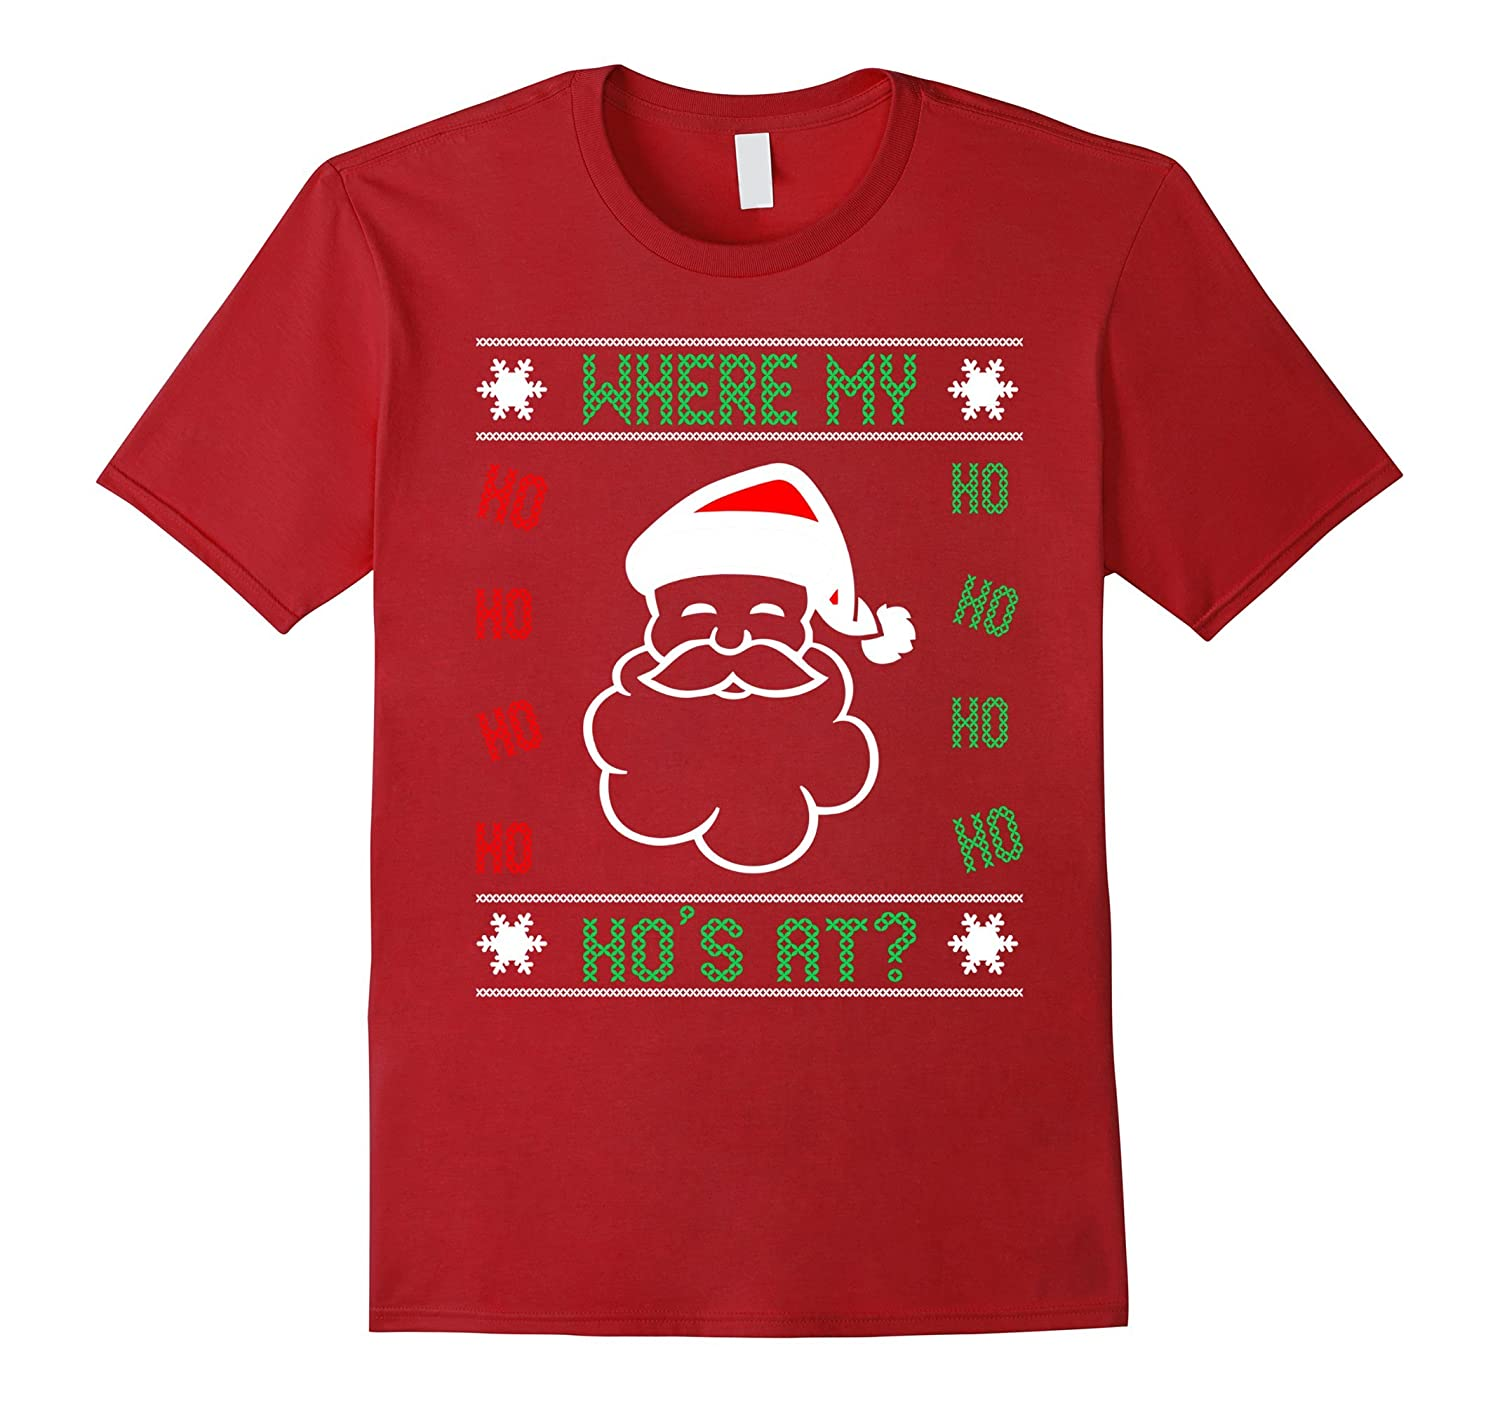 Funny Ugly Christmas Sweater.Where My Hos At Funny Ugly Christmas Sweater Santa T Shirt Anz